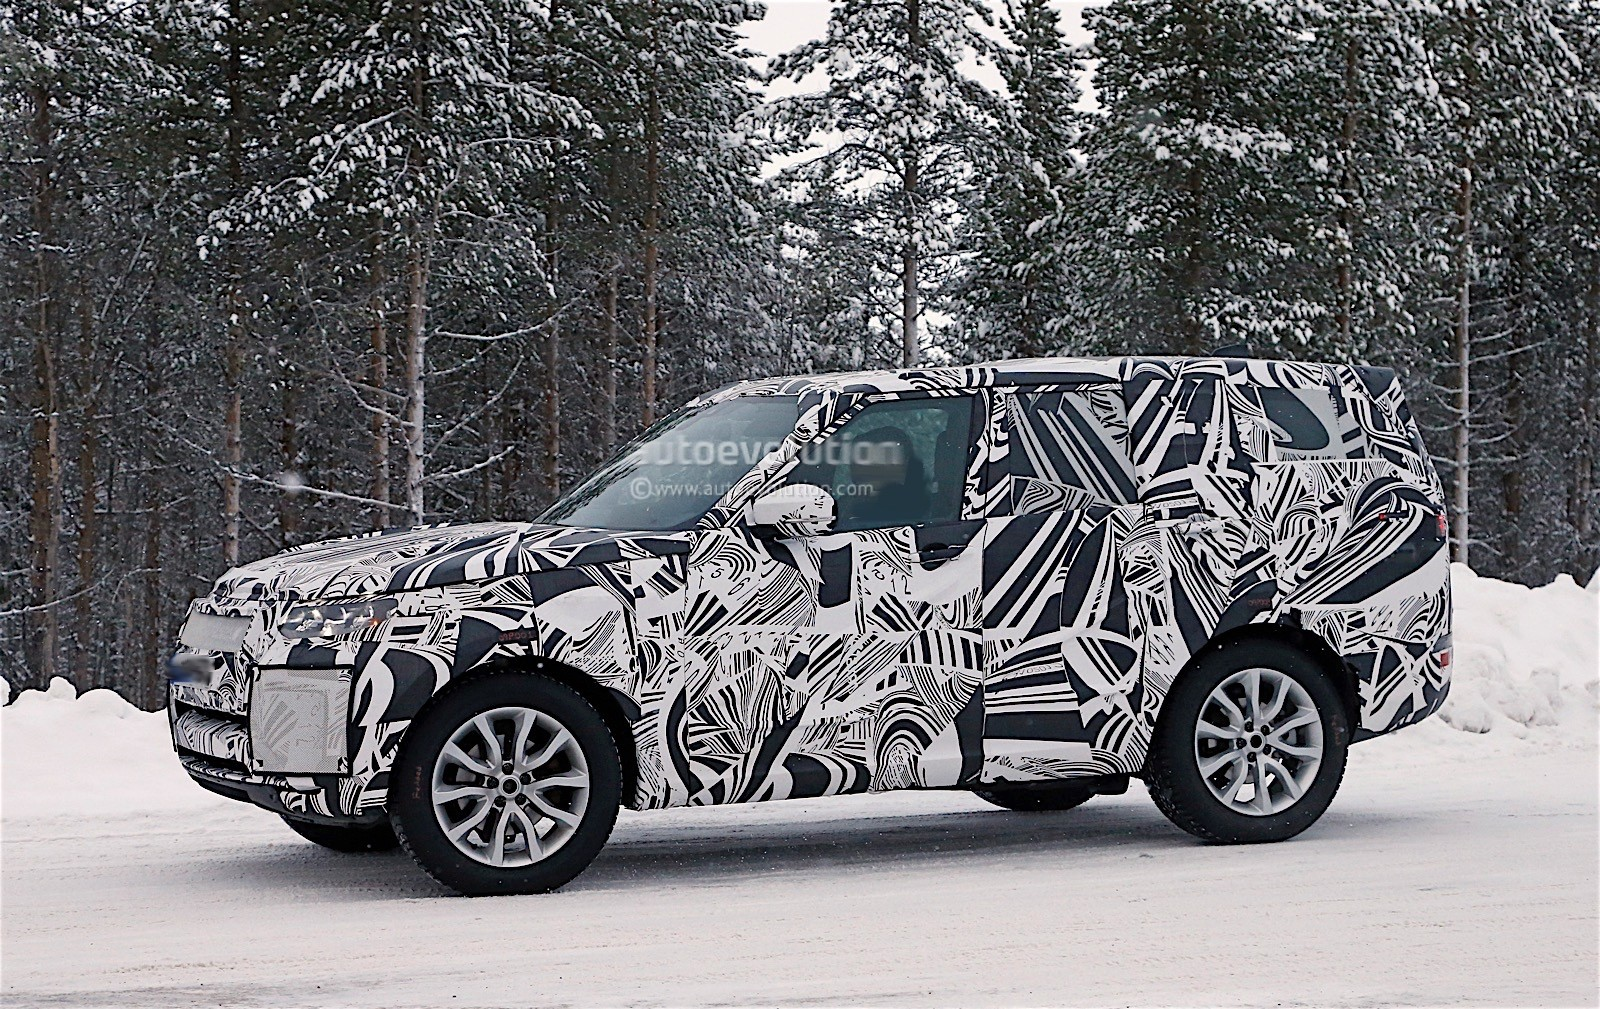 2018 Land Rover Discovery Spyshots Reveal New Design ...